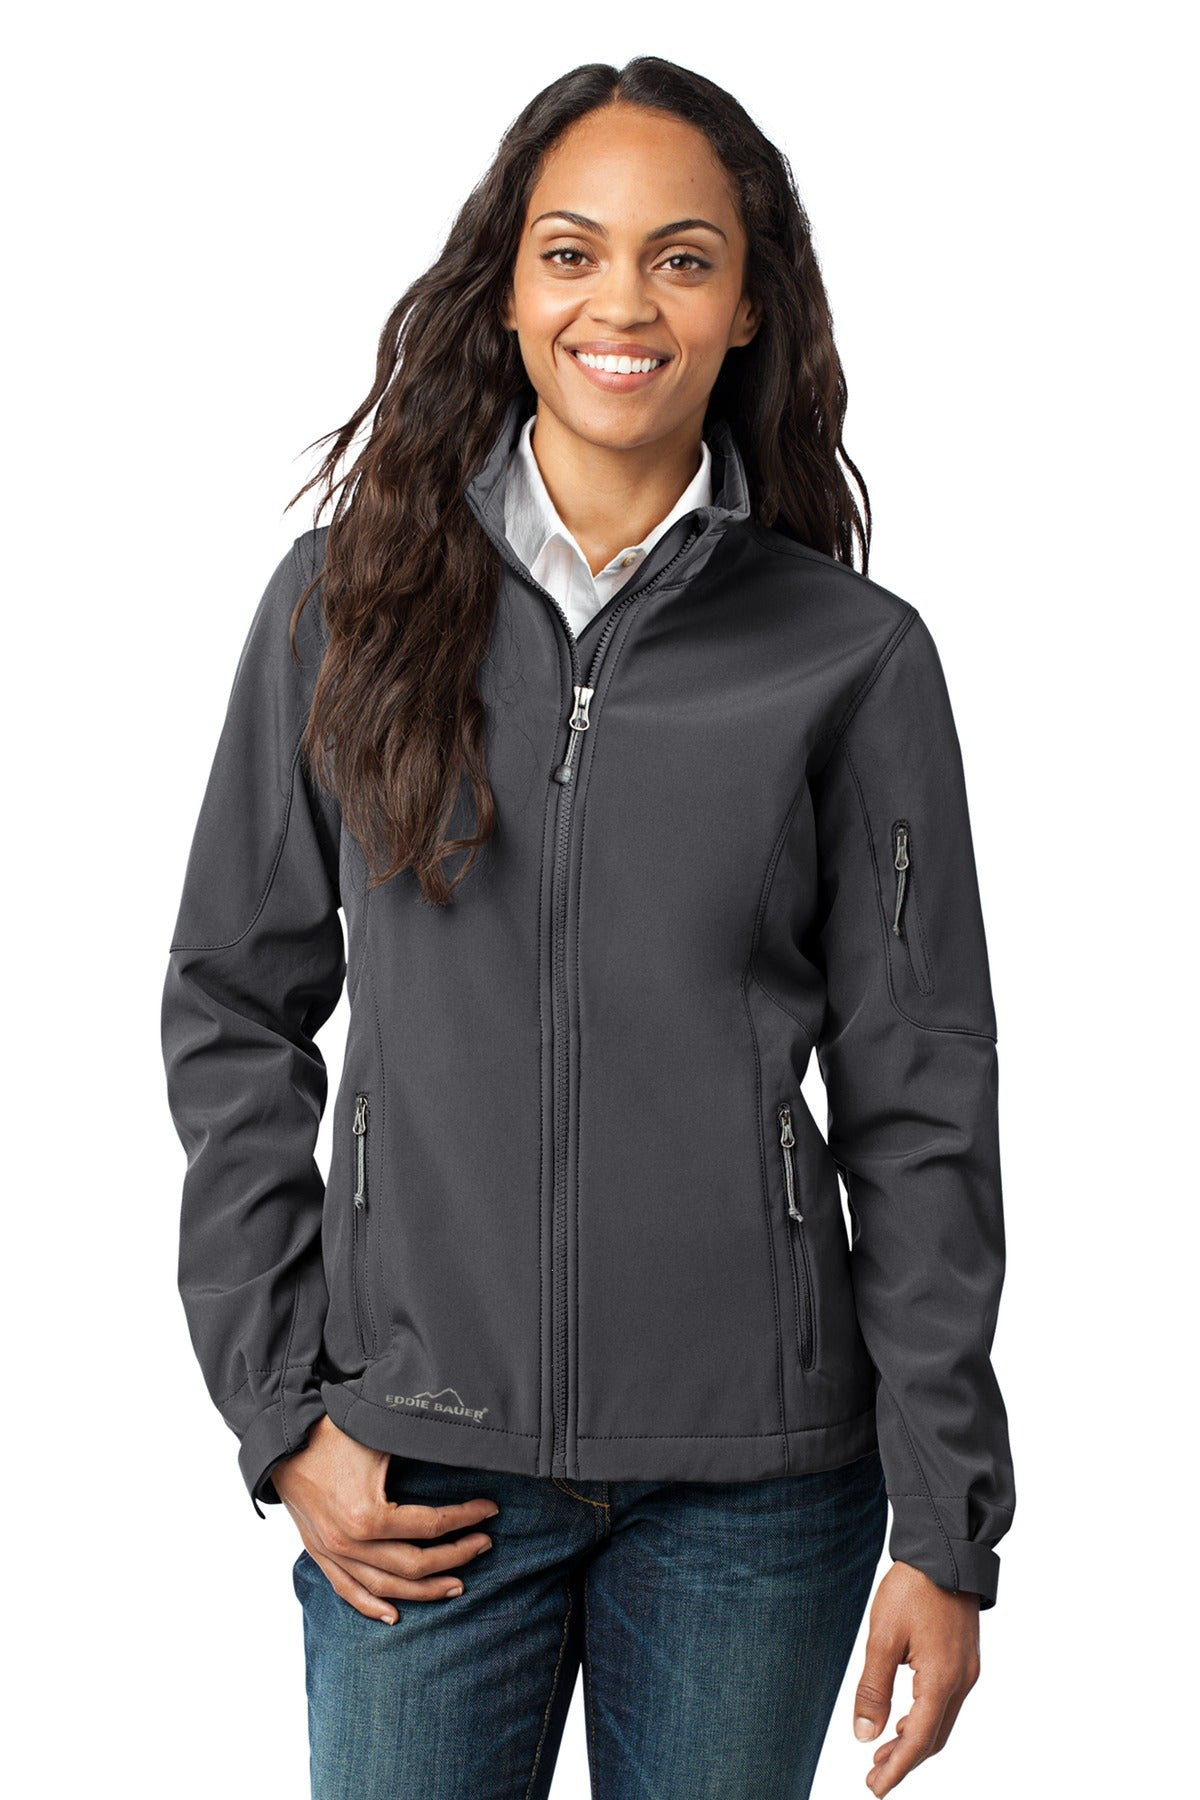 Eddie Bauer® - Ladies Soft Shell Jacket. EB531 - Aspire Zone